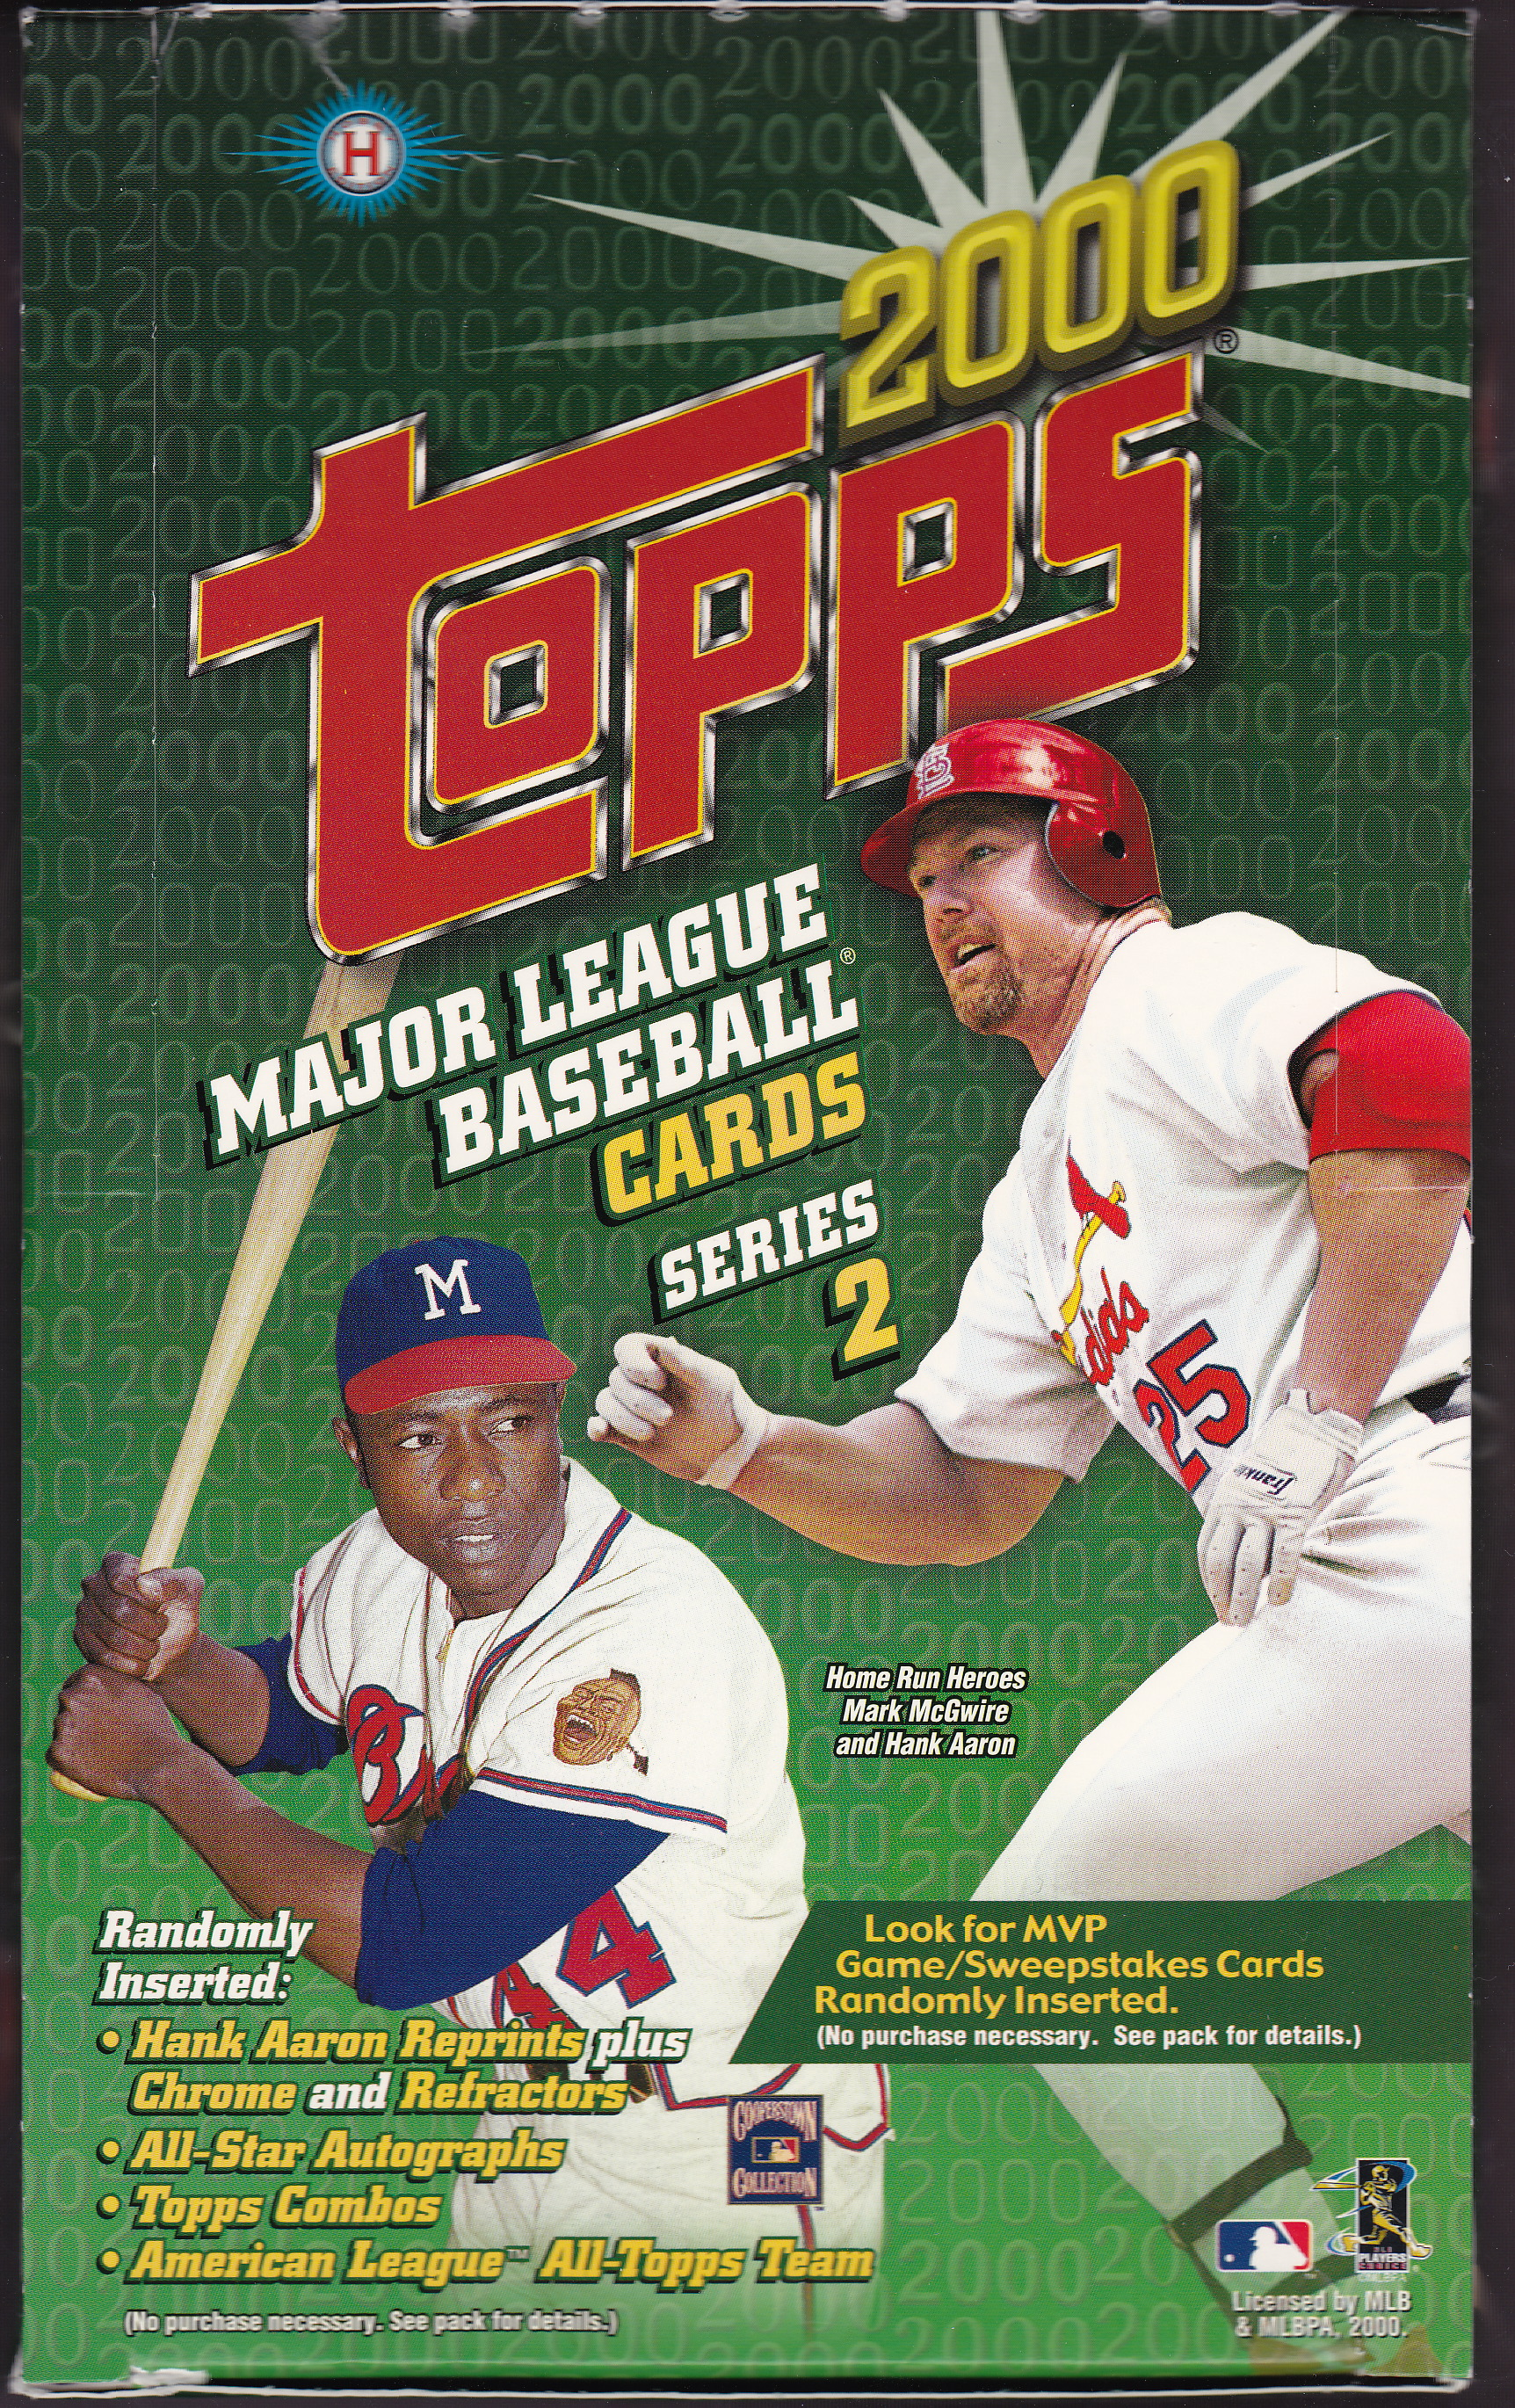 2000 Topps Overview Lifetime Topps Project